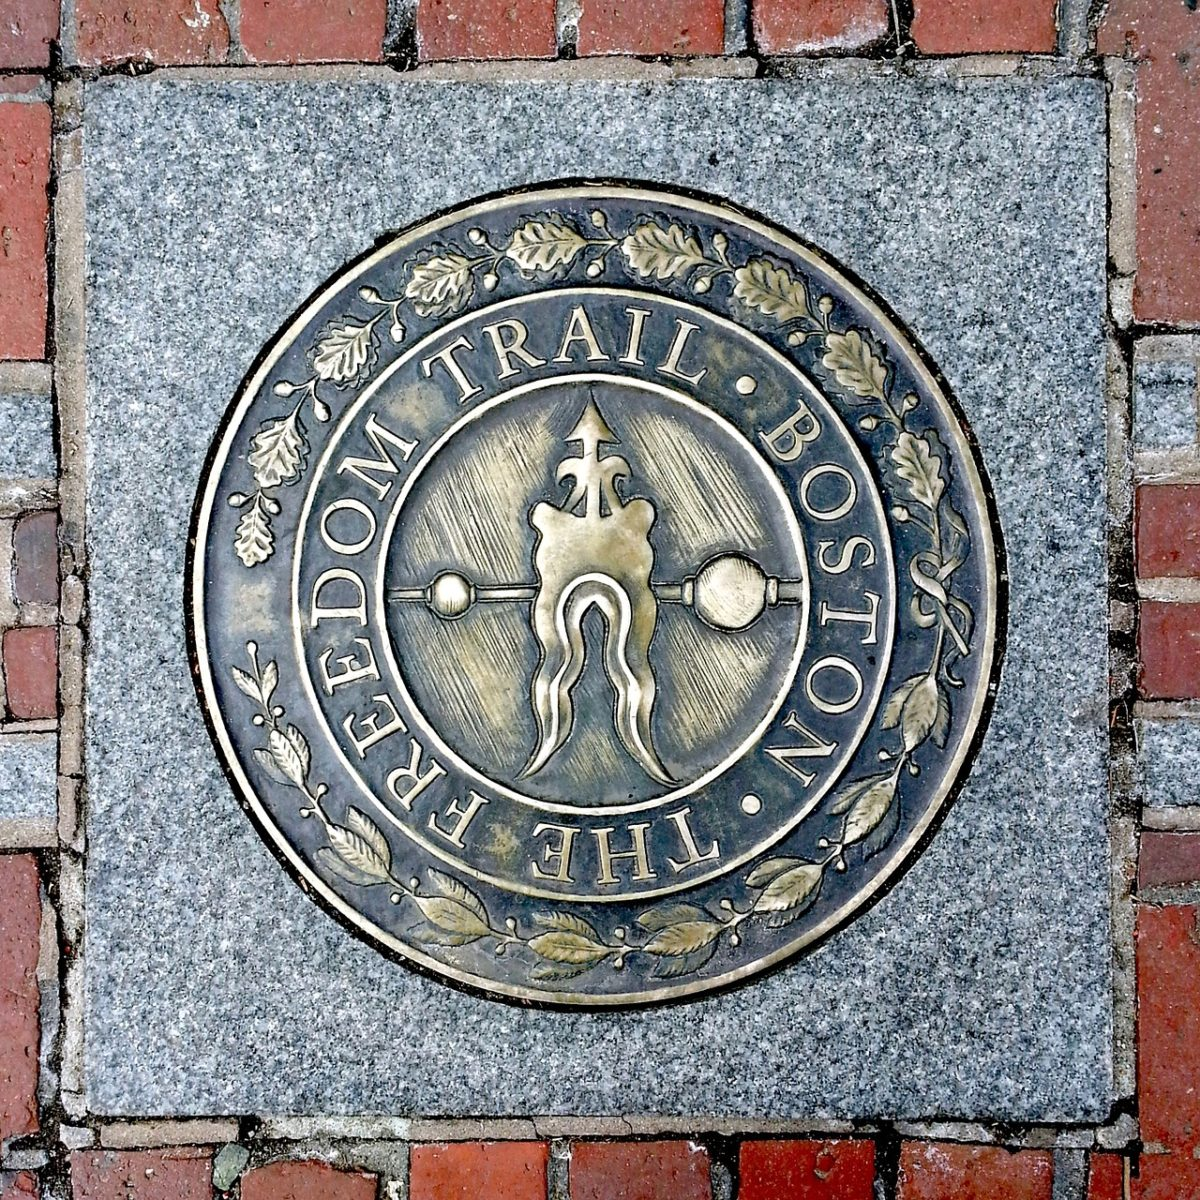 Freedom Trail Pixabay Public Domain